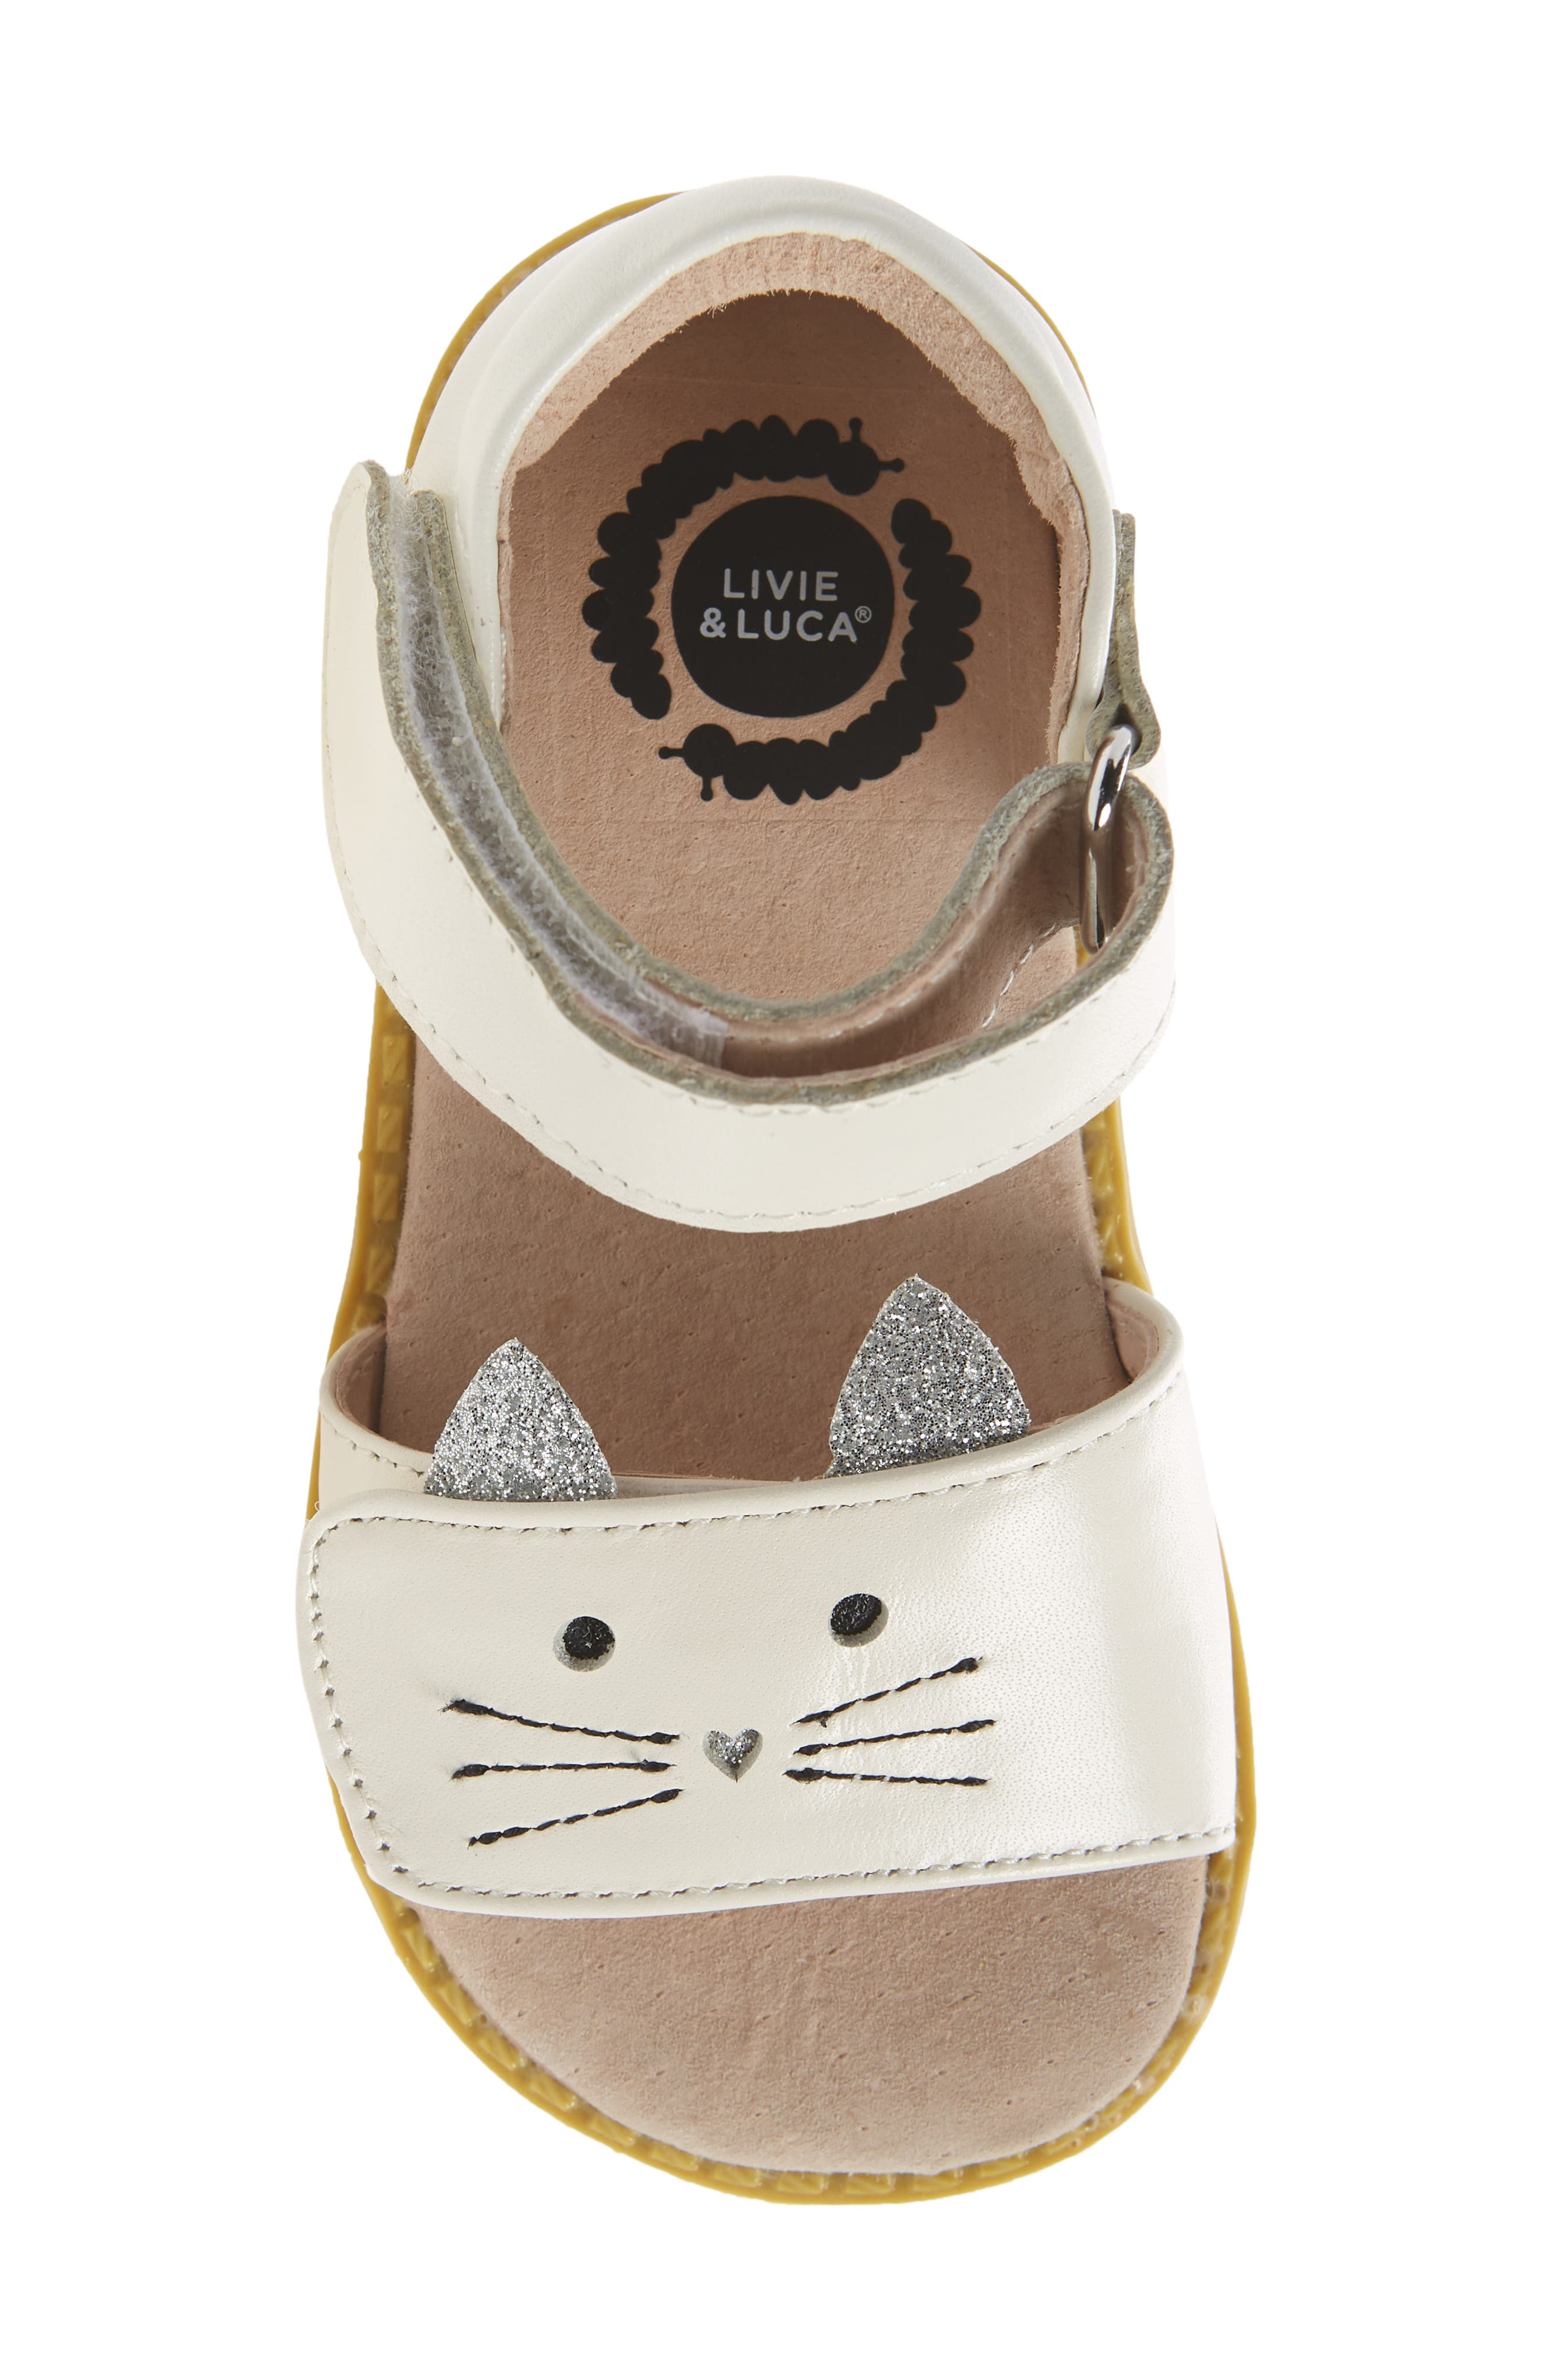 Tabby Kitty Face Sandal,                             Alternate thumbnail 5, color,                             MILK